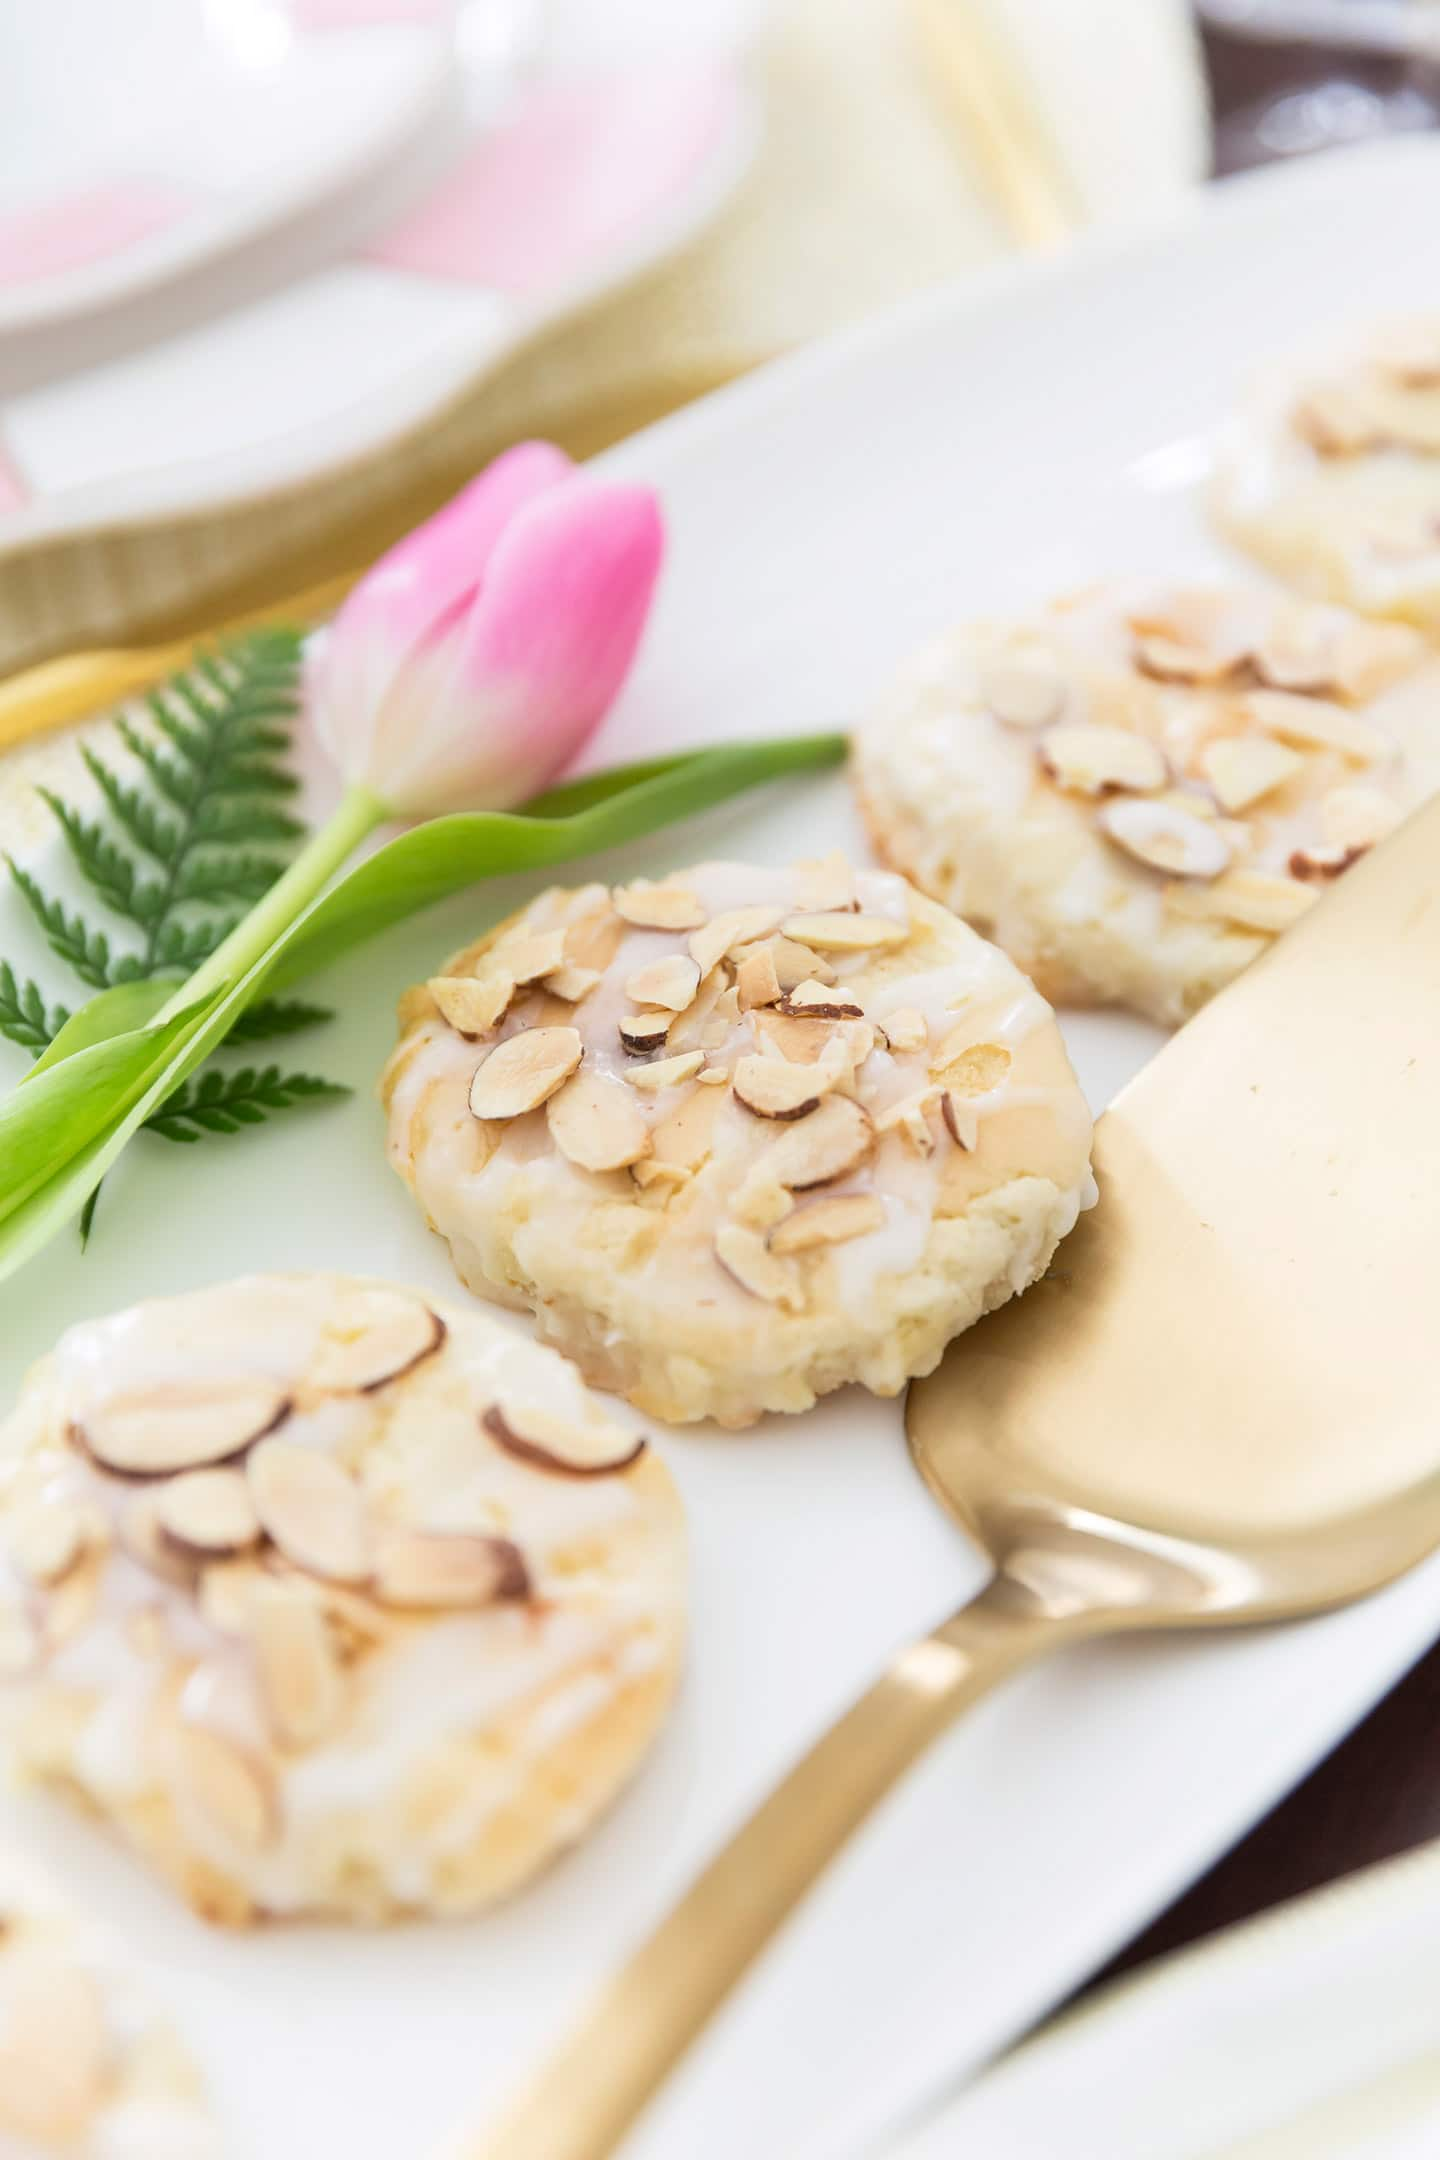 Almond Pastry Cookies, glazed flaky delicious almond!